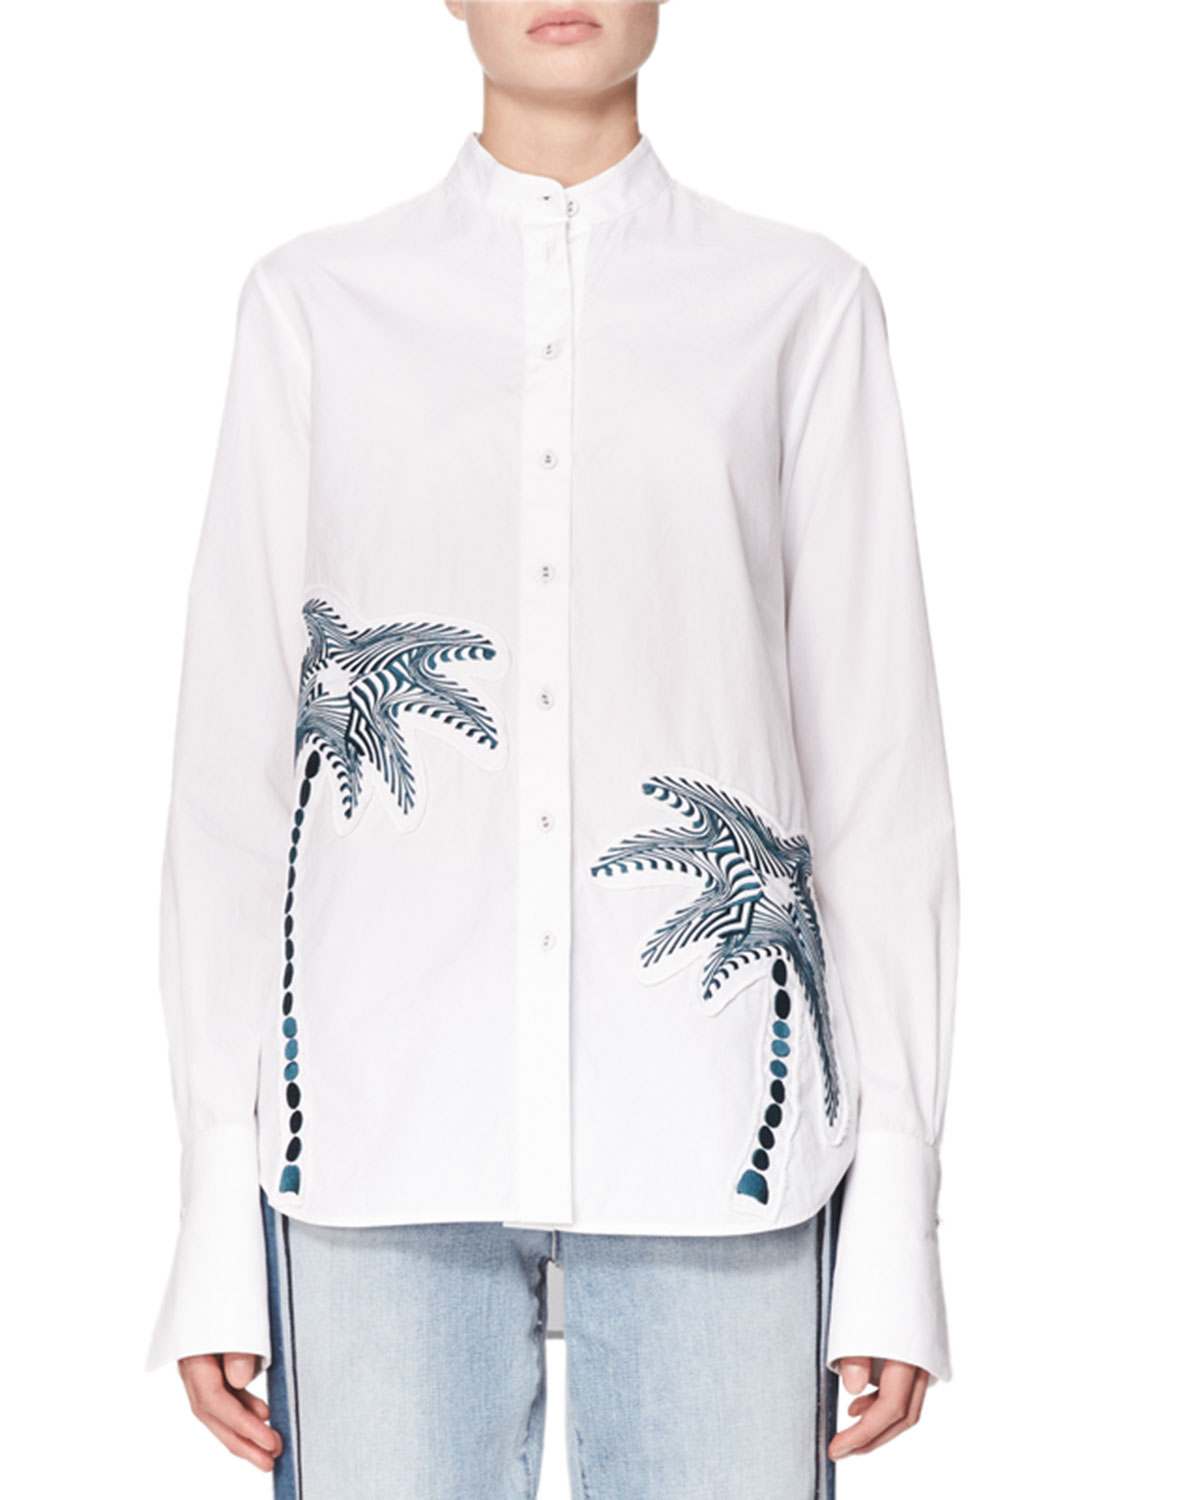 Palm Tree Embroidered Shirt, White